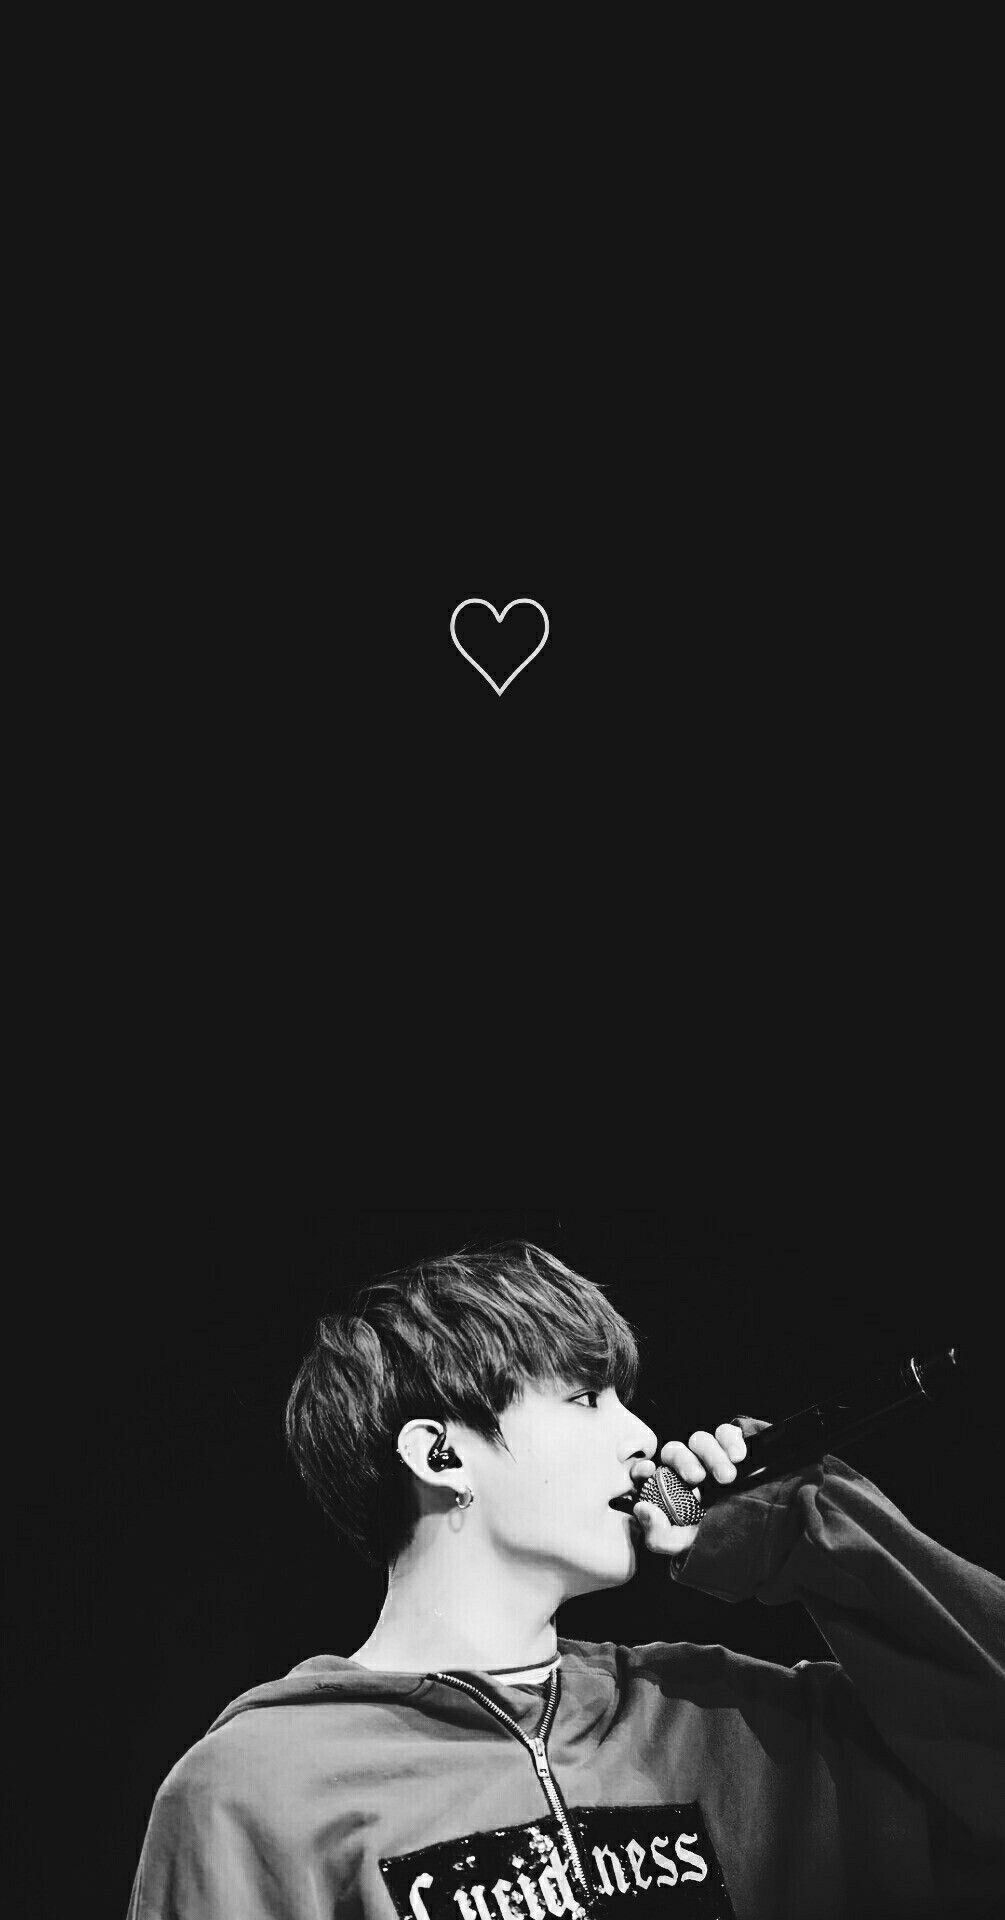 Bts Wallpaper Aesthetic Black Free Wallpaper HD Collection